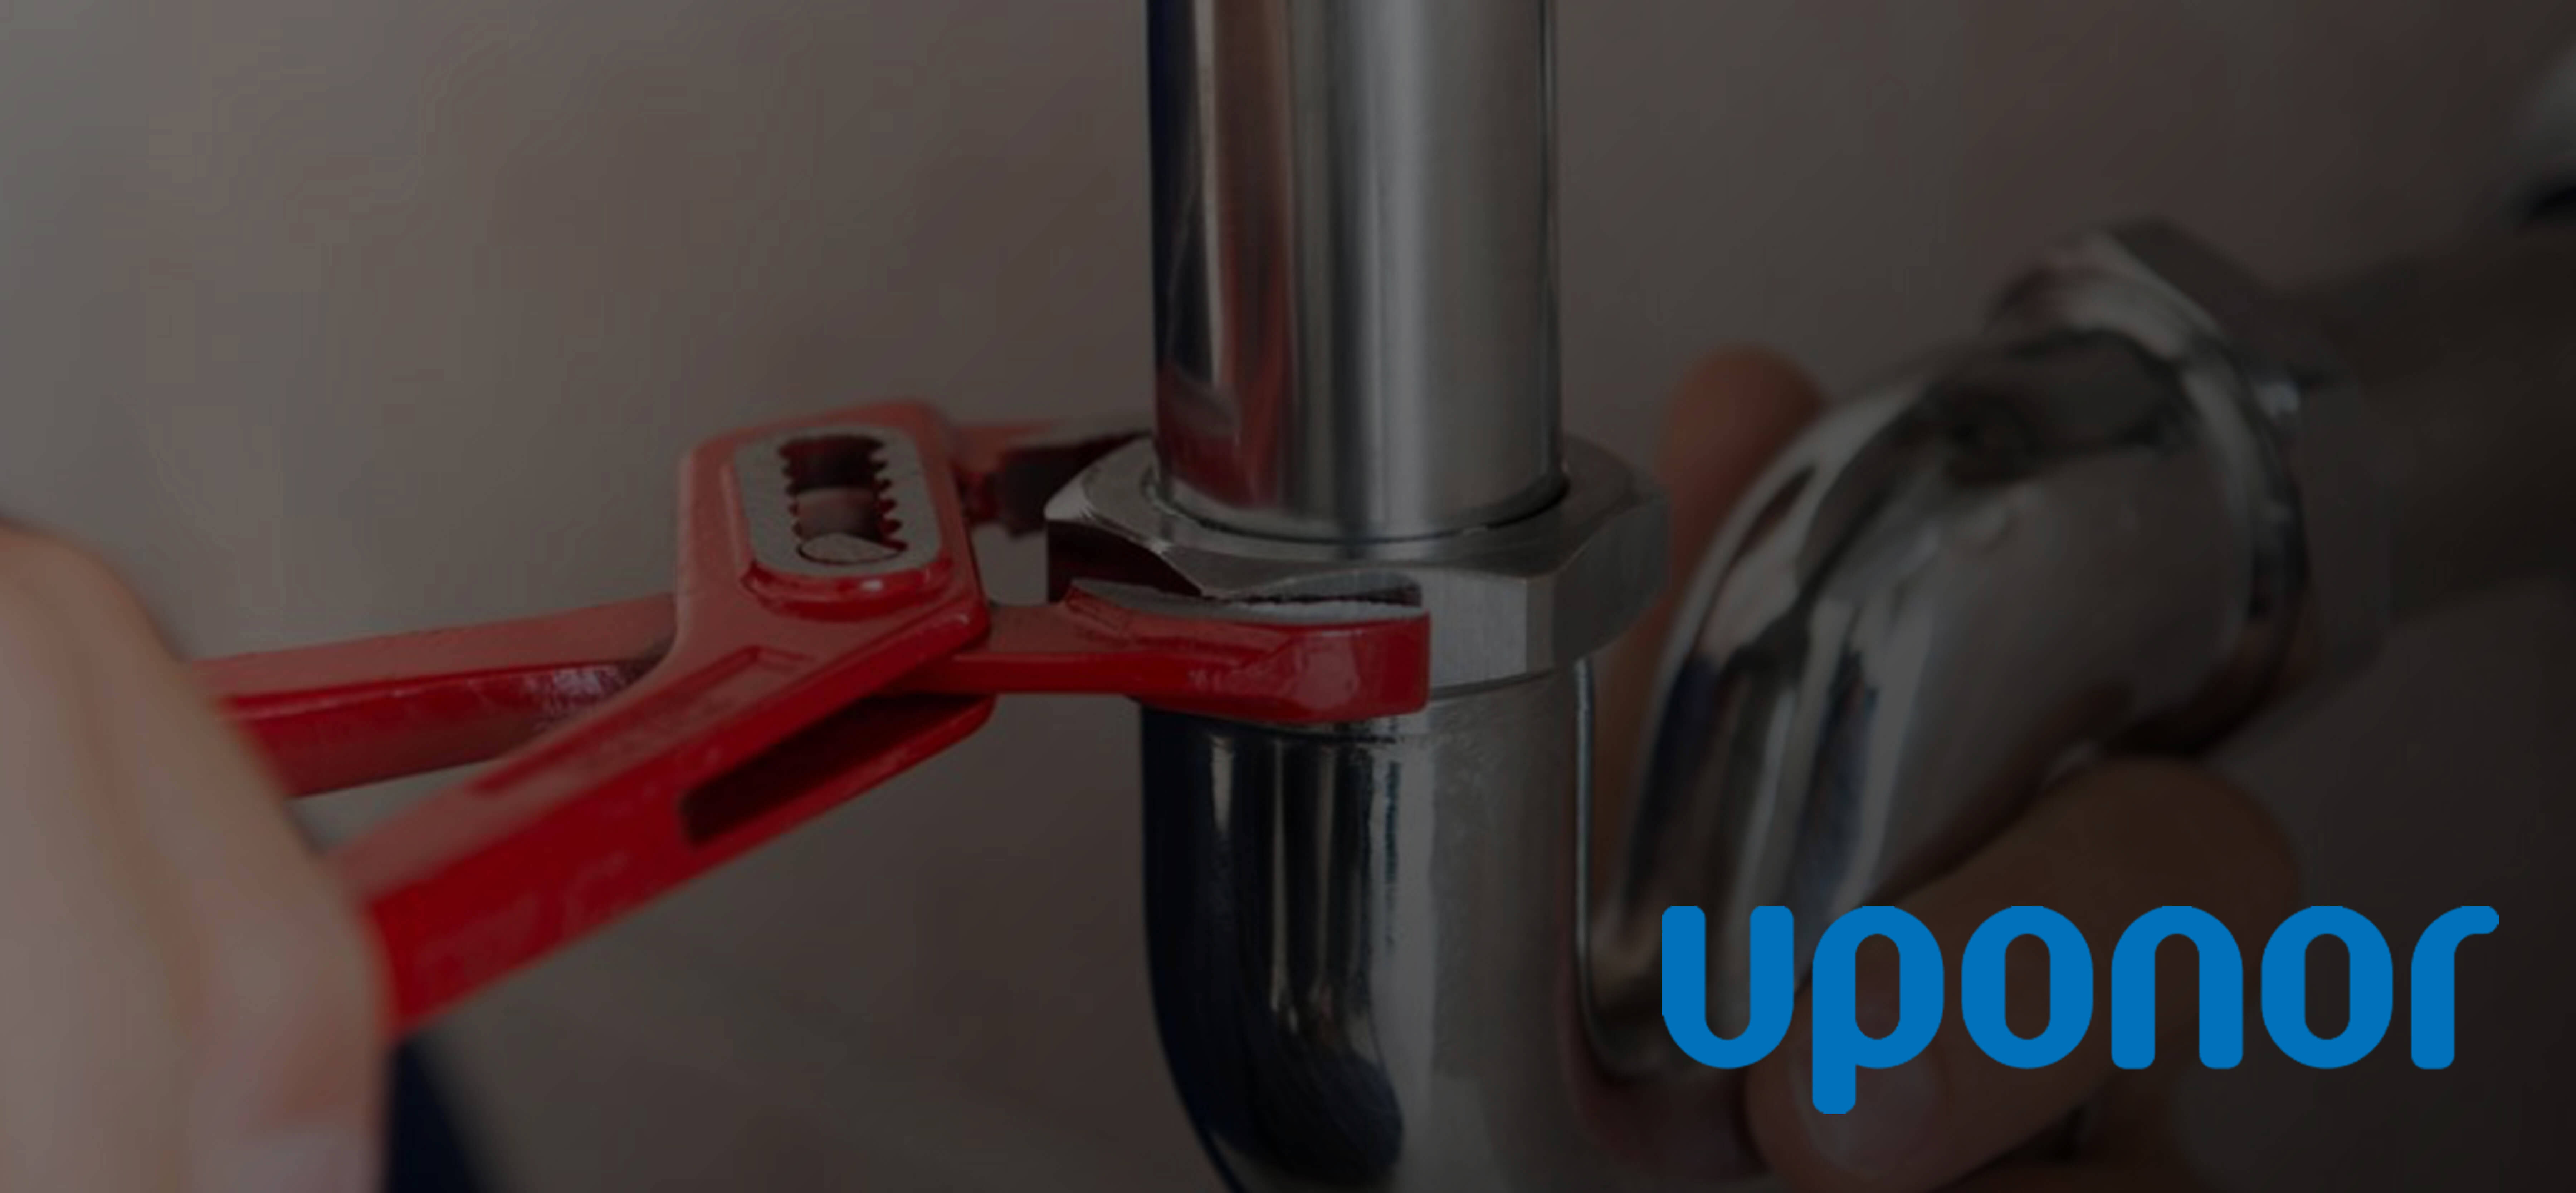 uponor | Lexicon Networks